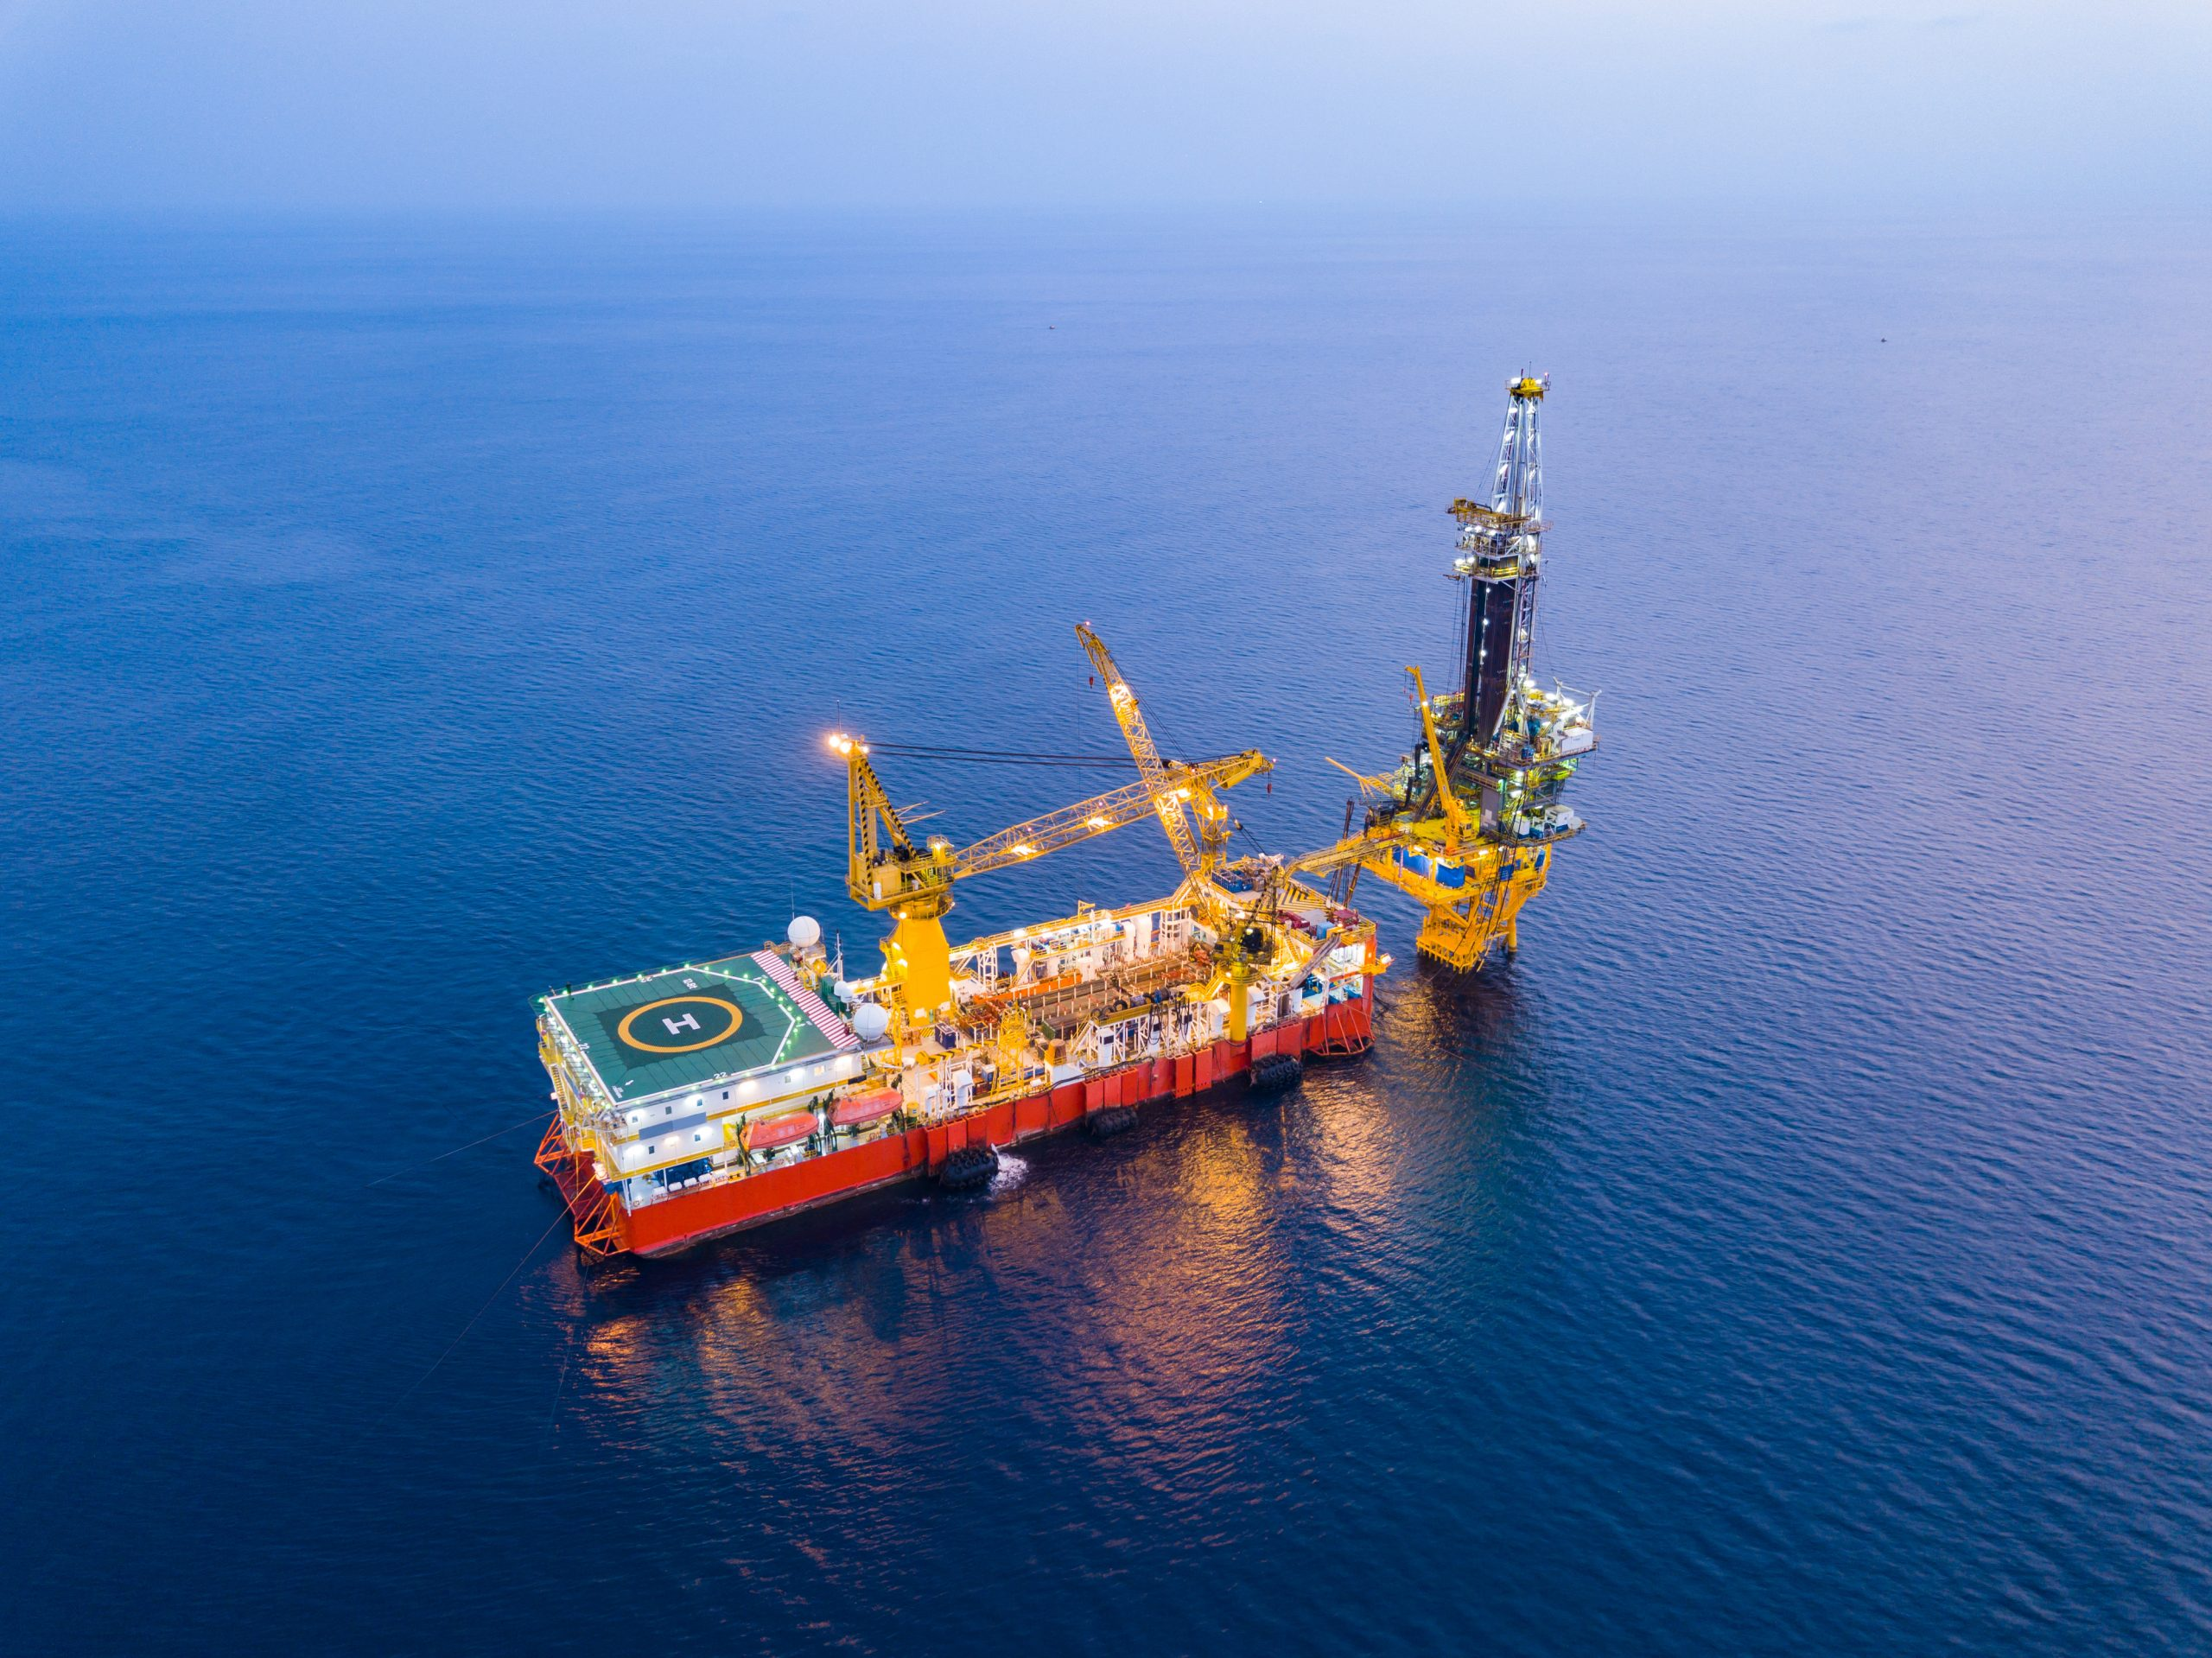 Aerial View of Tender Drilling Oil Rig